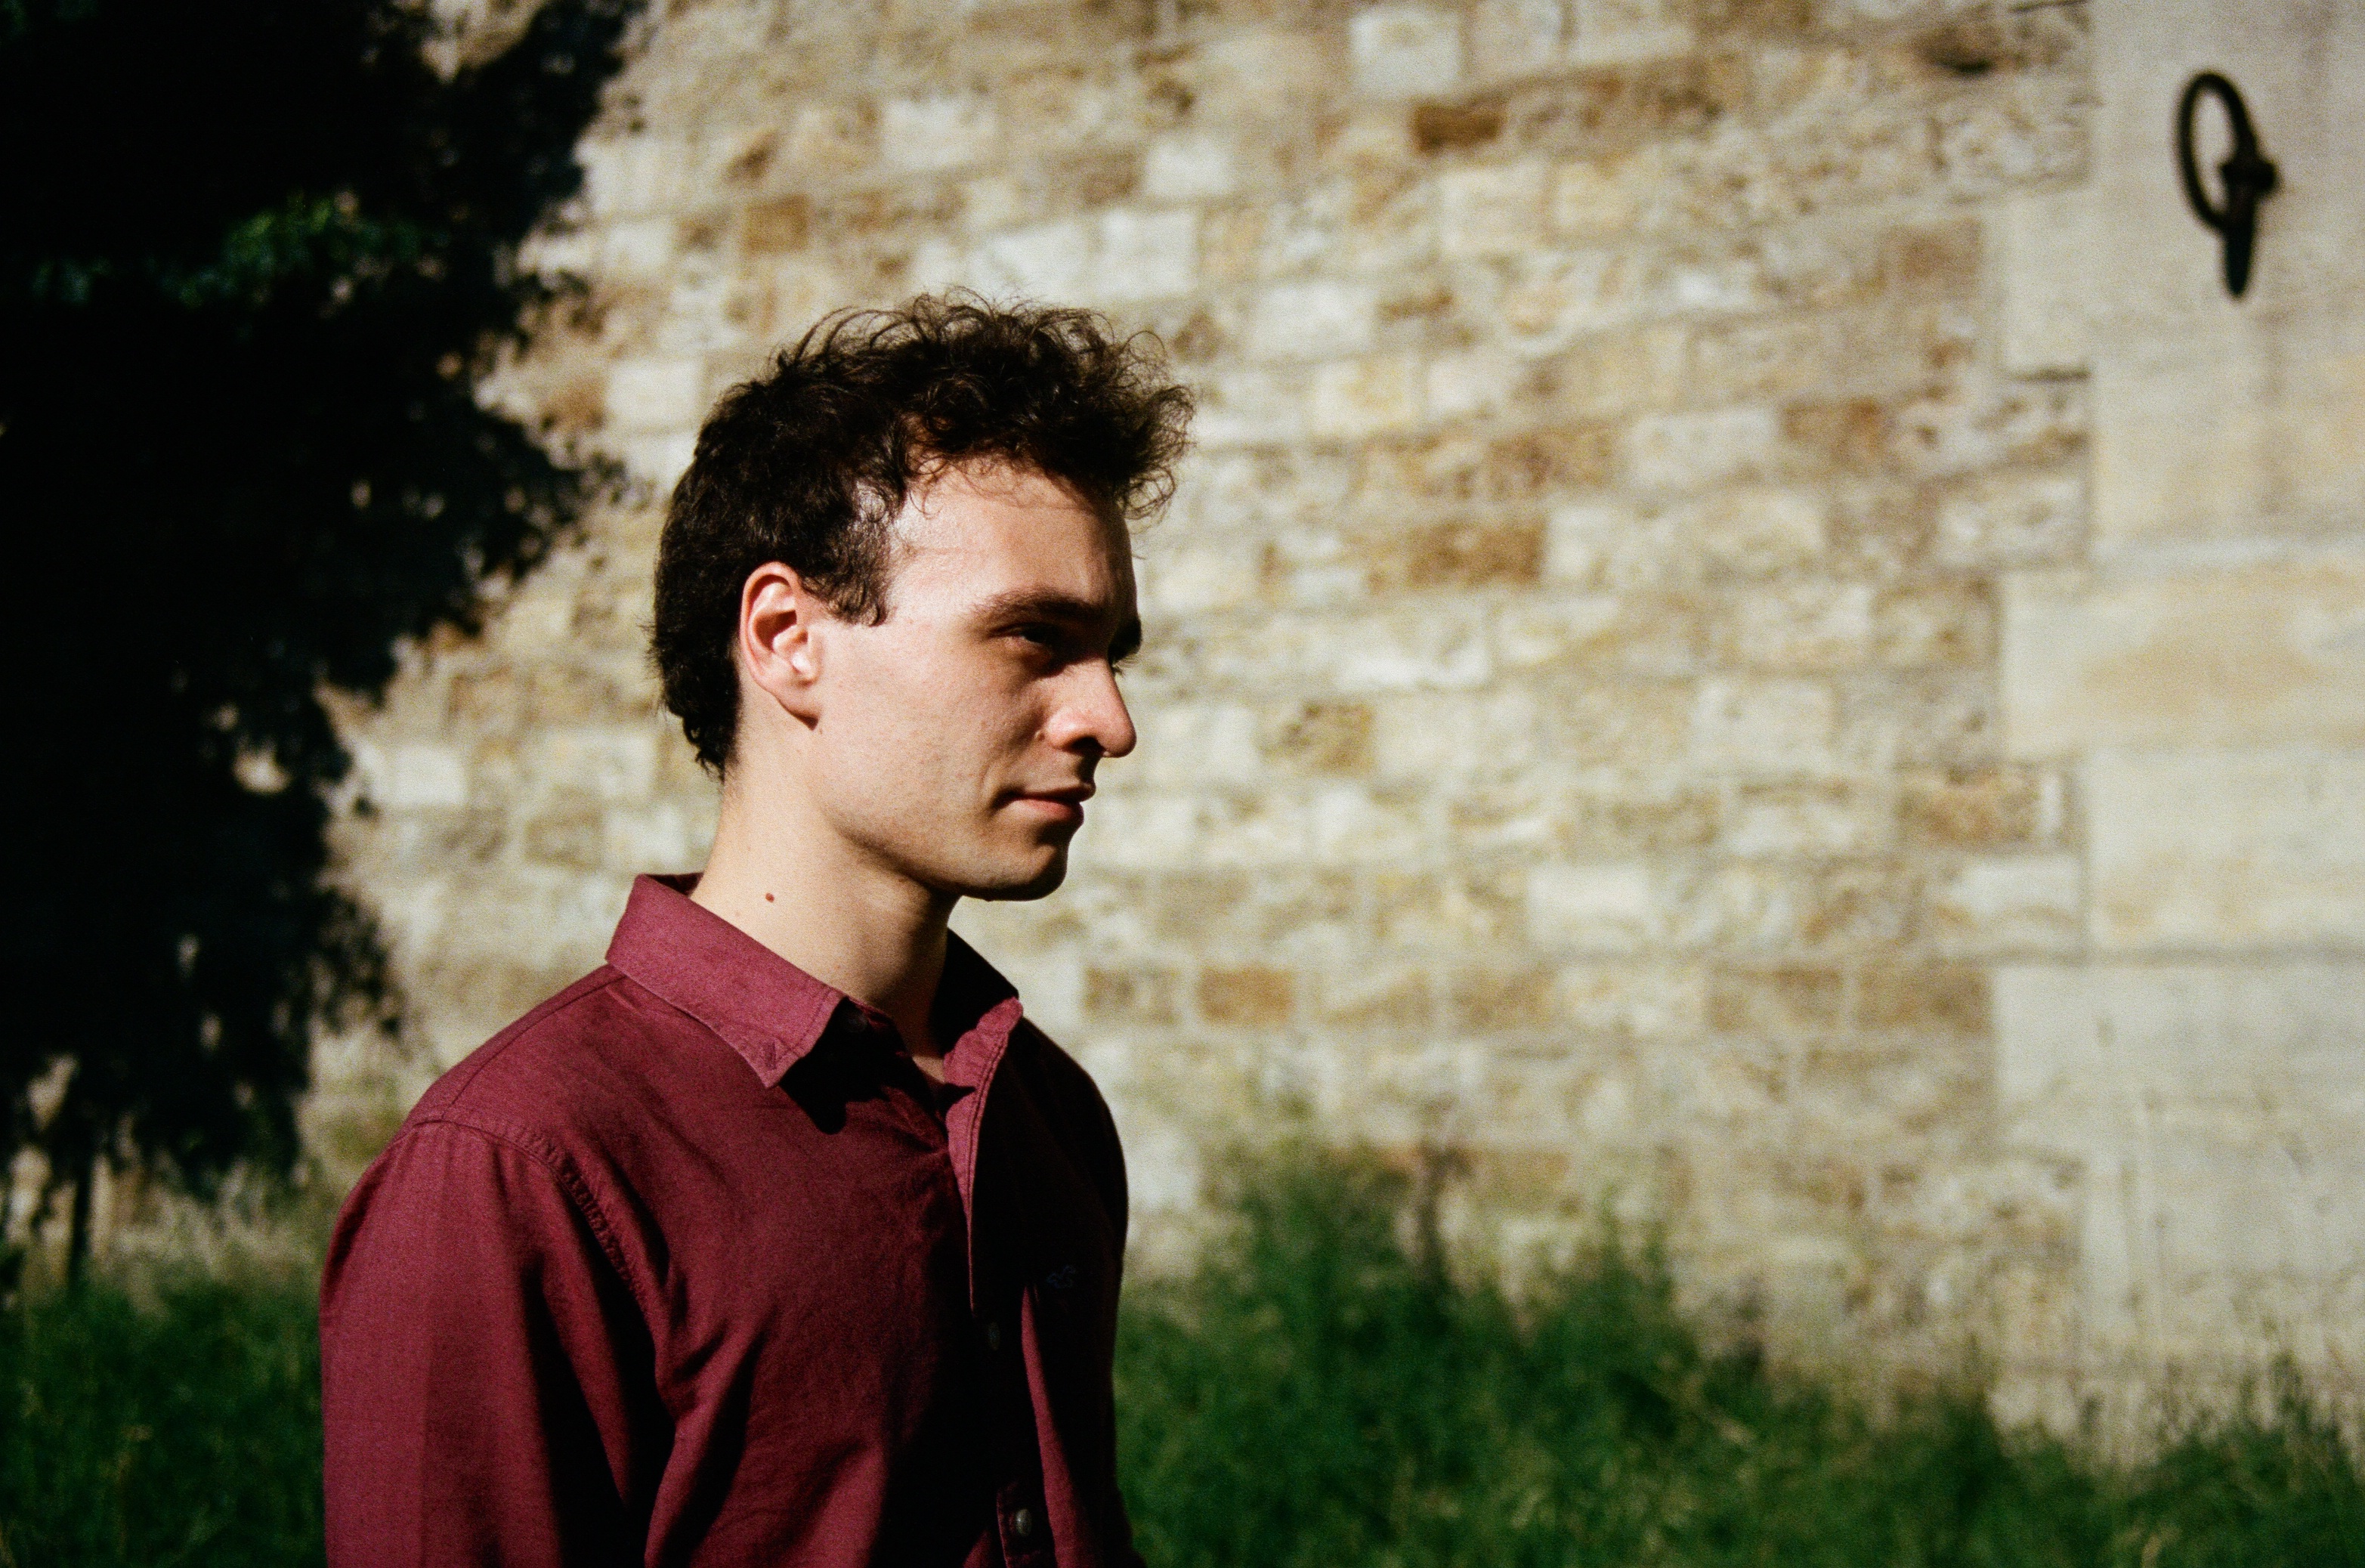 Questions in Brussels as resident pianist wins Queen Elisabeth competition